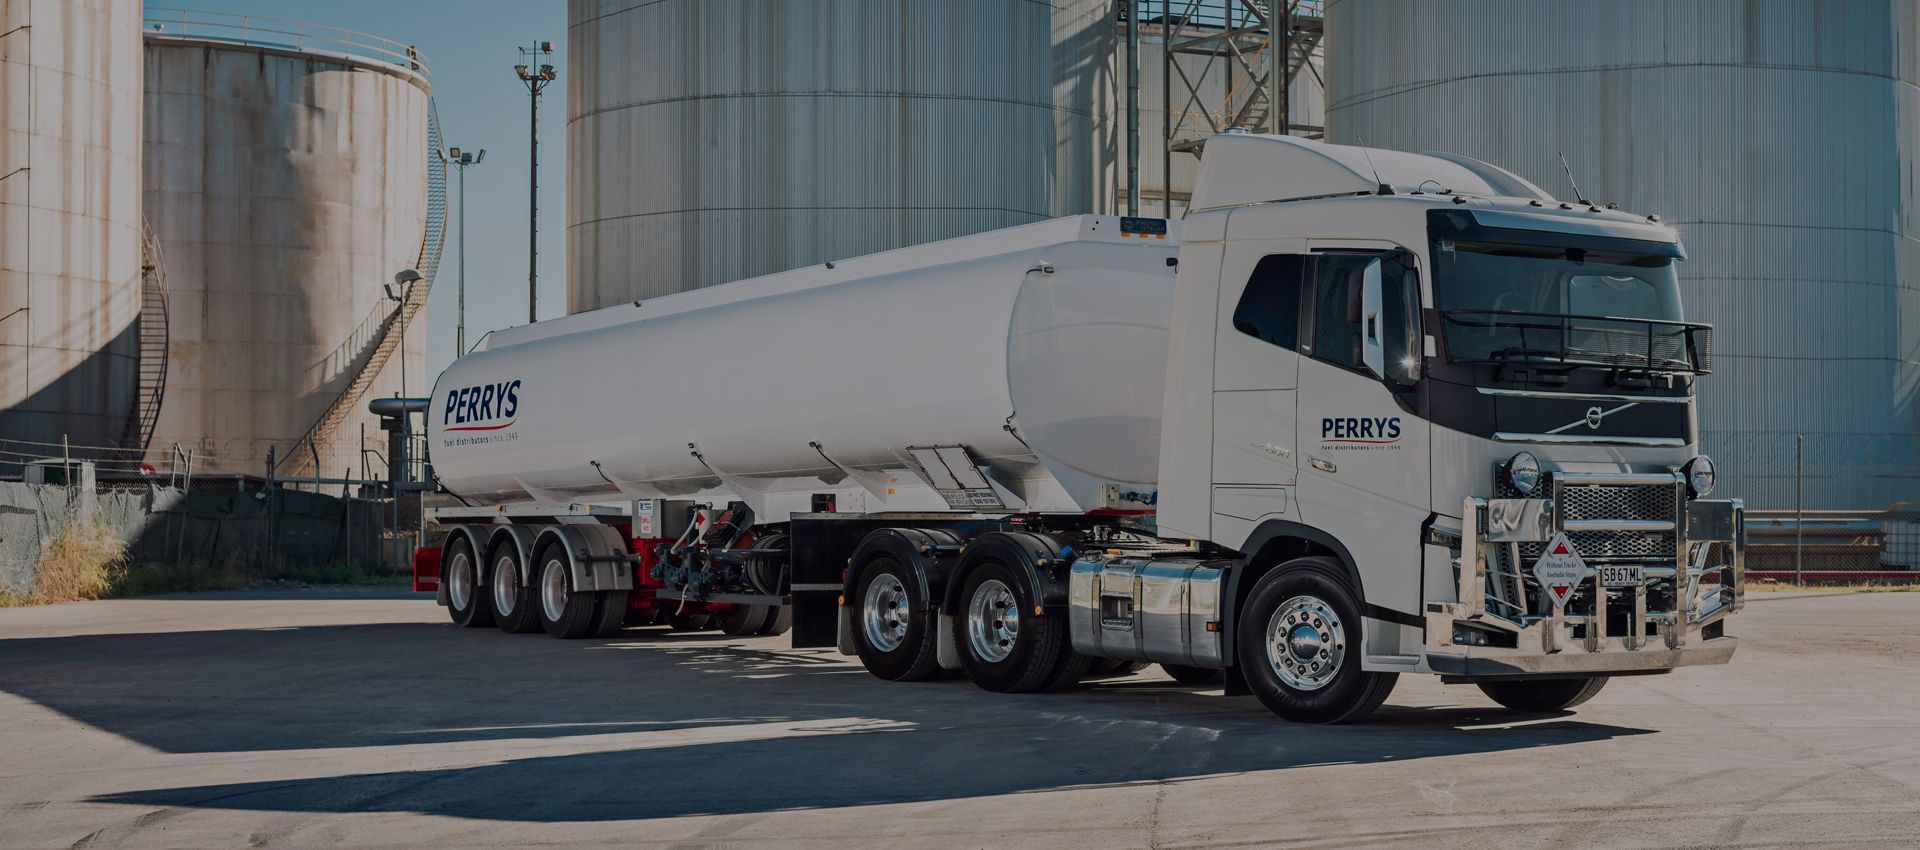 Perrys Fuel Distributors